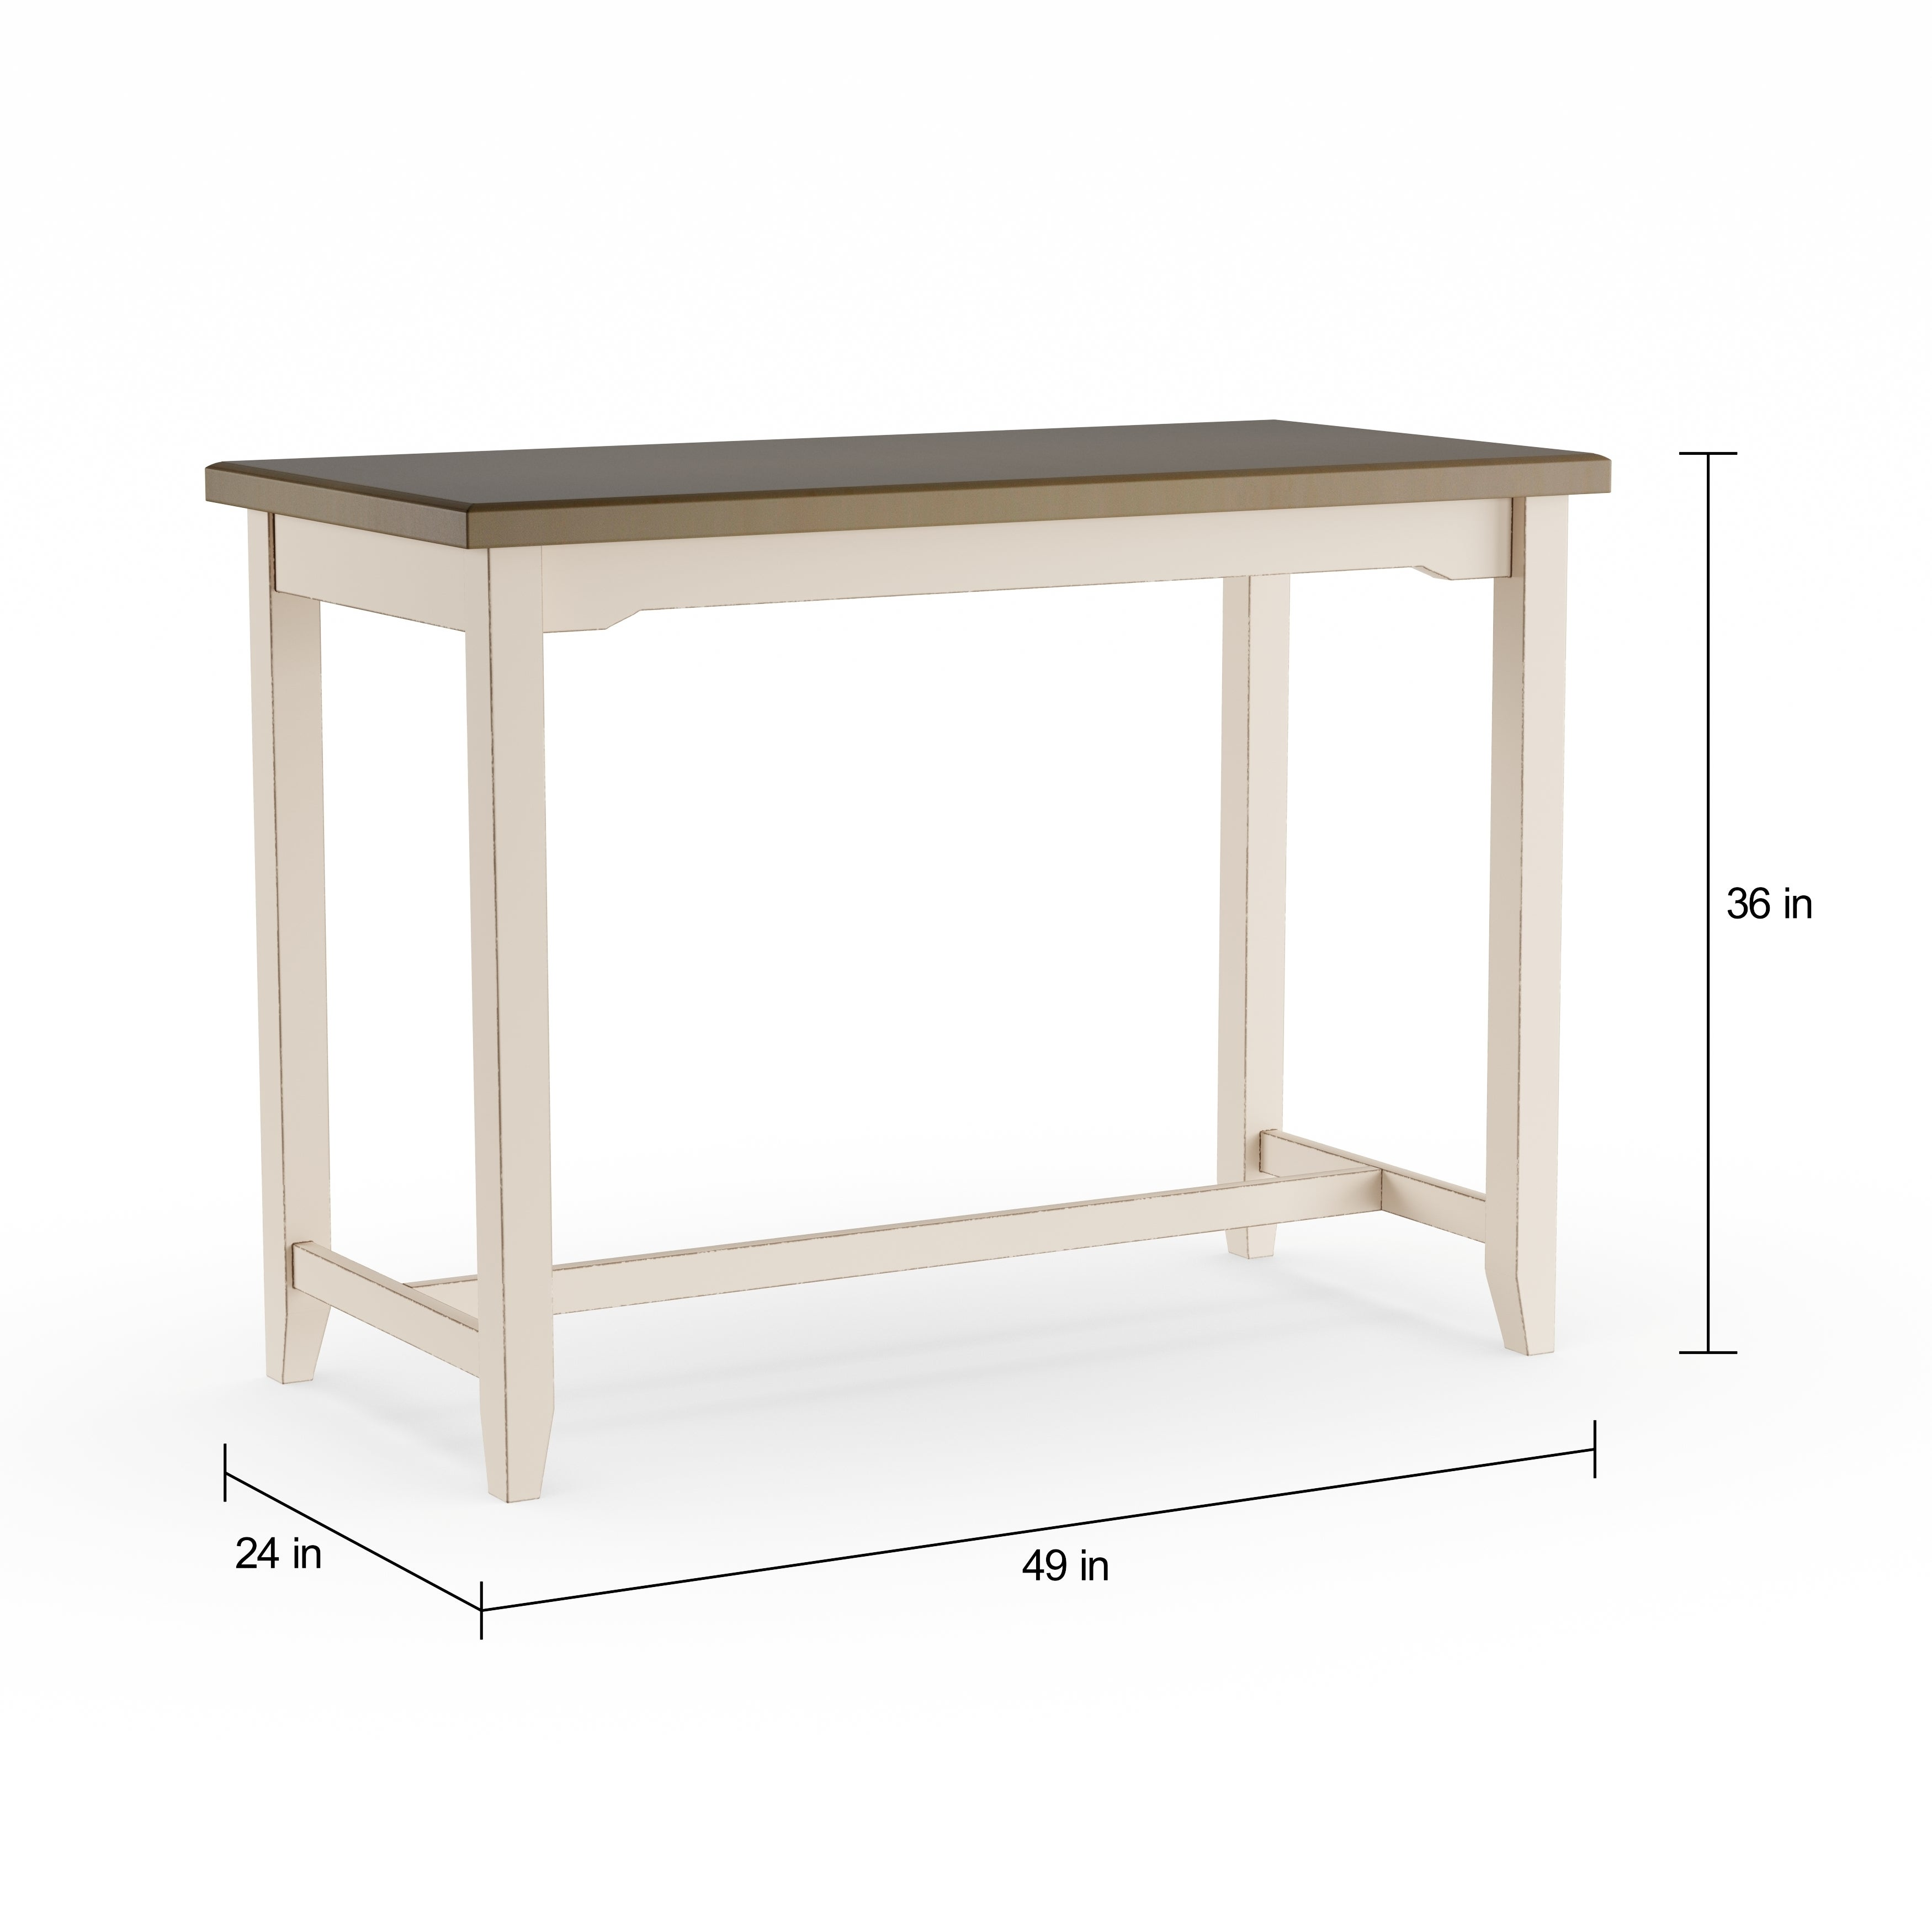 Delicieux Shop The Gray Barn Steeplechase Counter Height Grey Side Table   Free  Shipping Today   Overstock   20488125